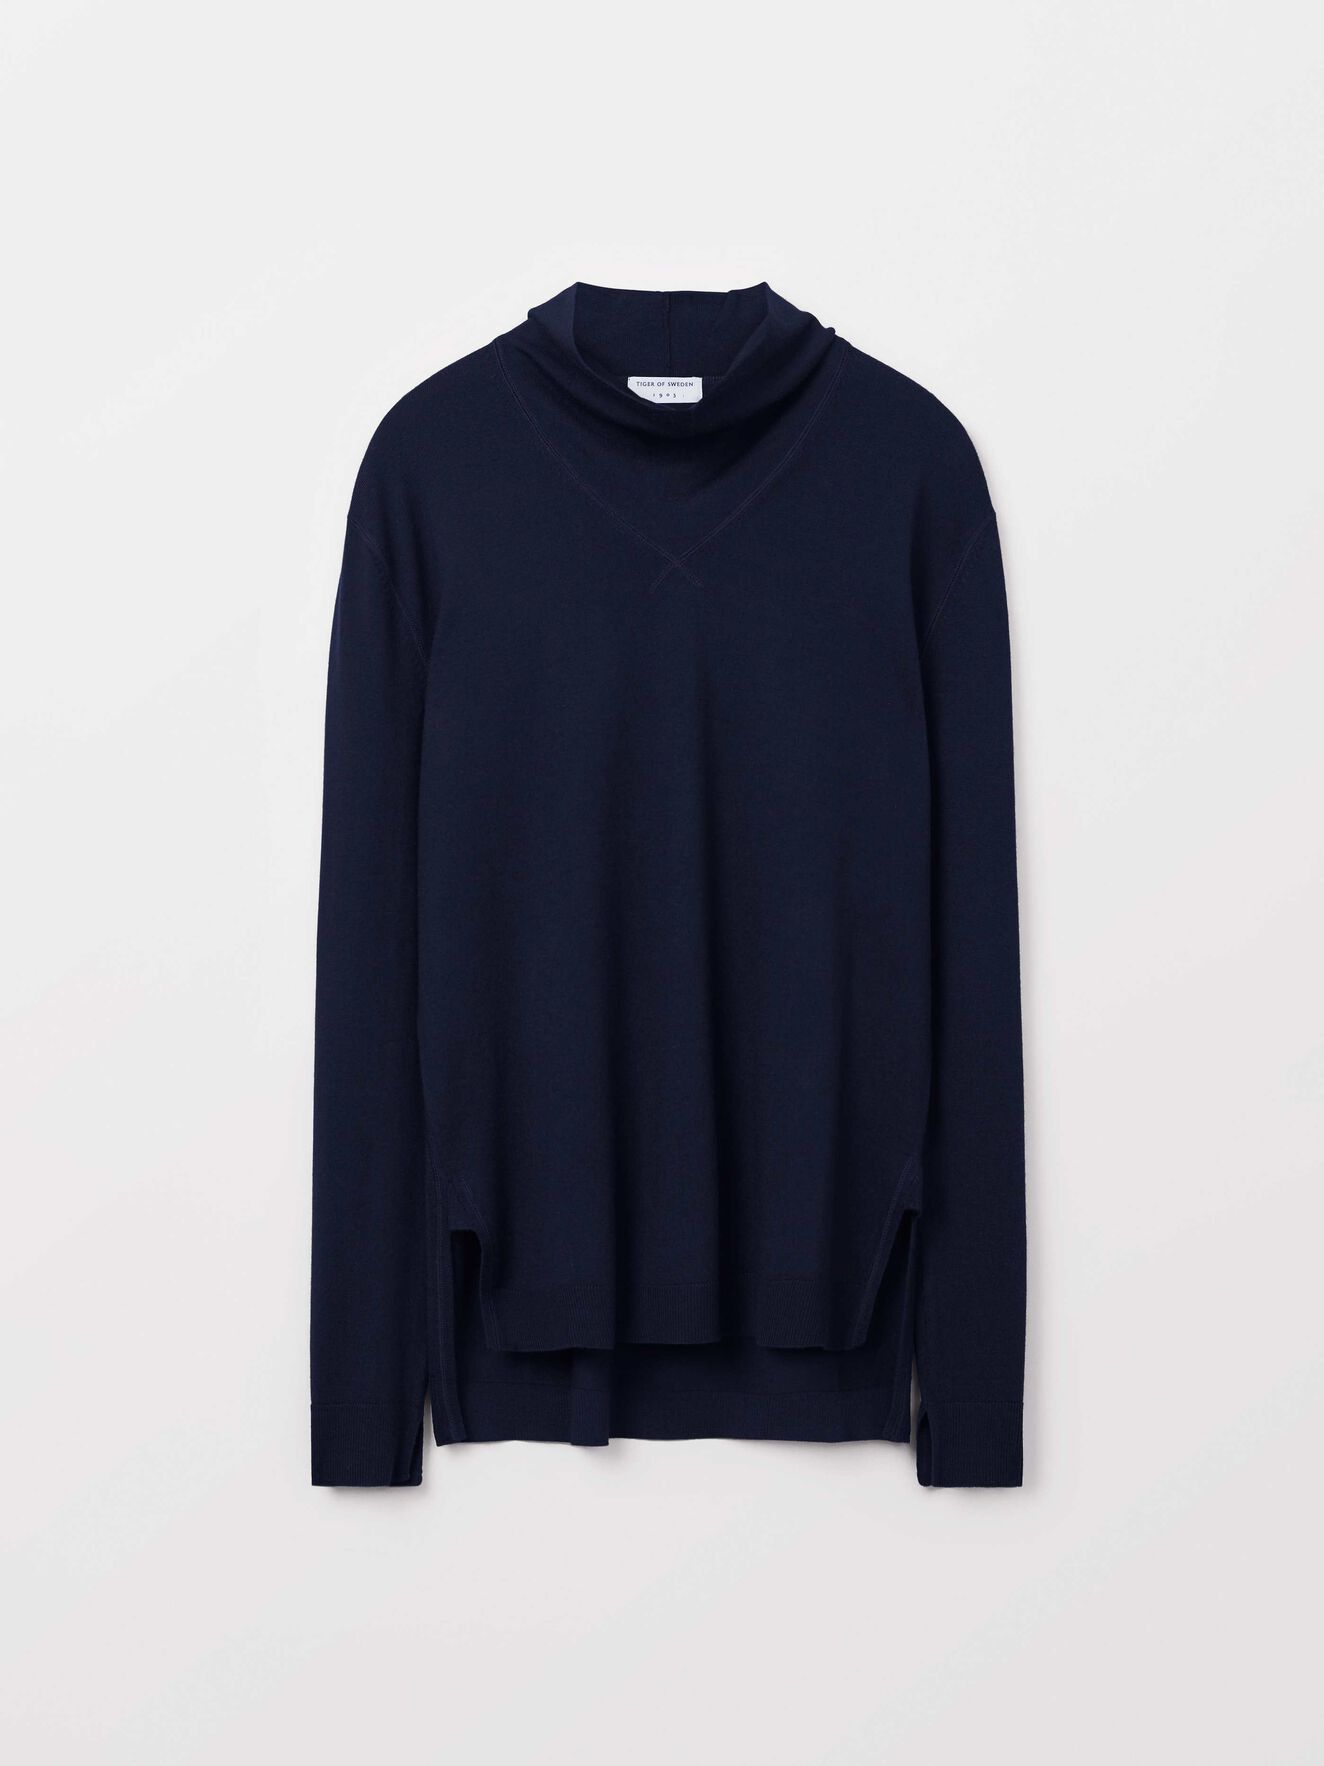 Nohan Pullover in Light Ink from Tiger of Sweden